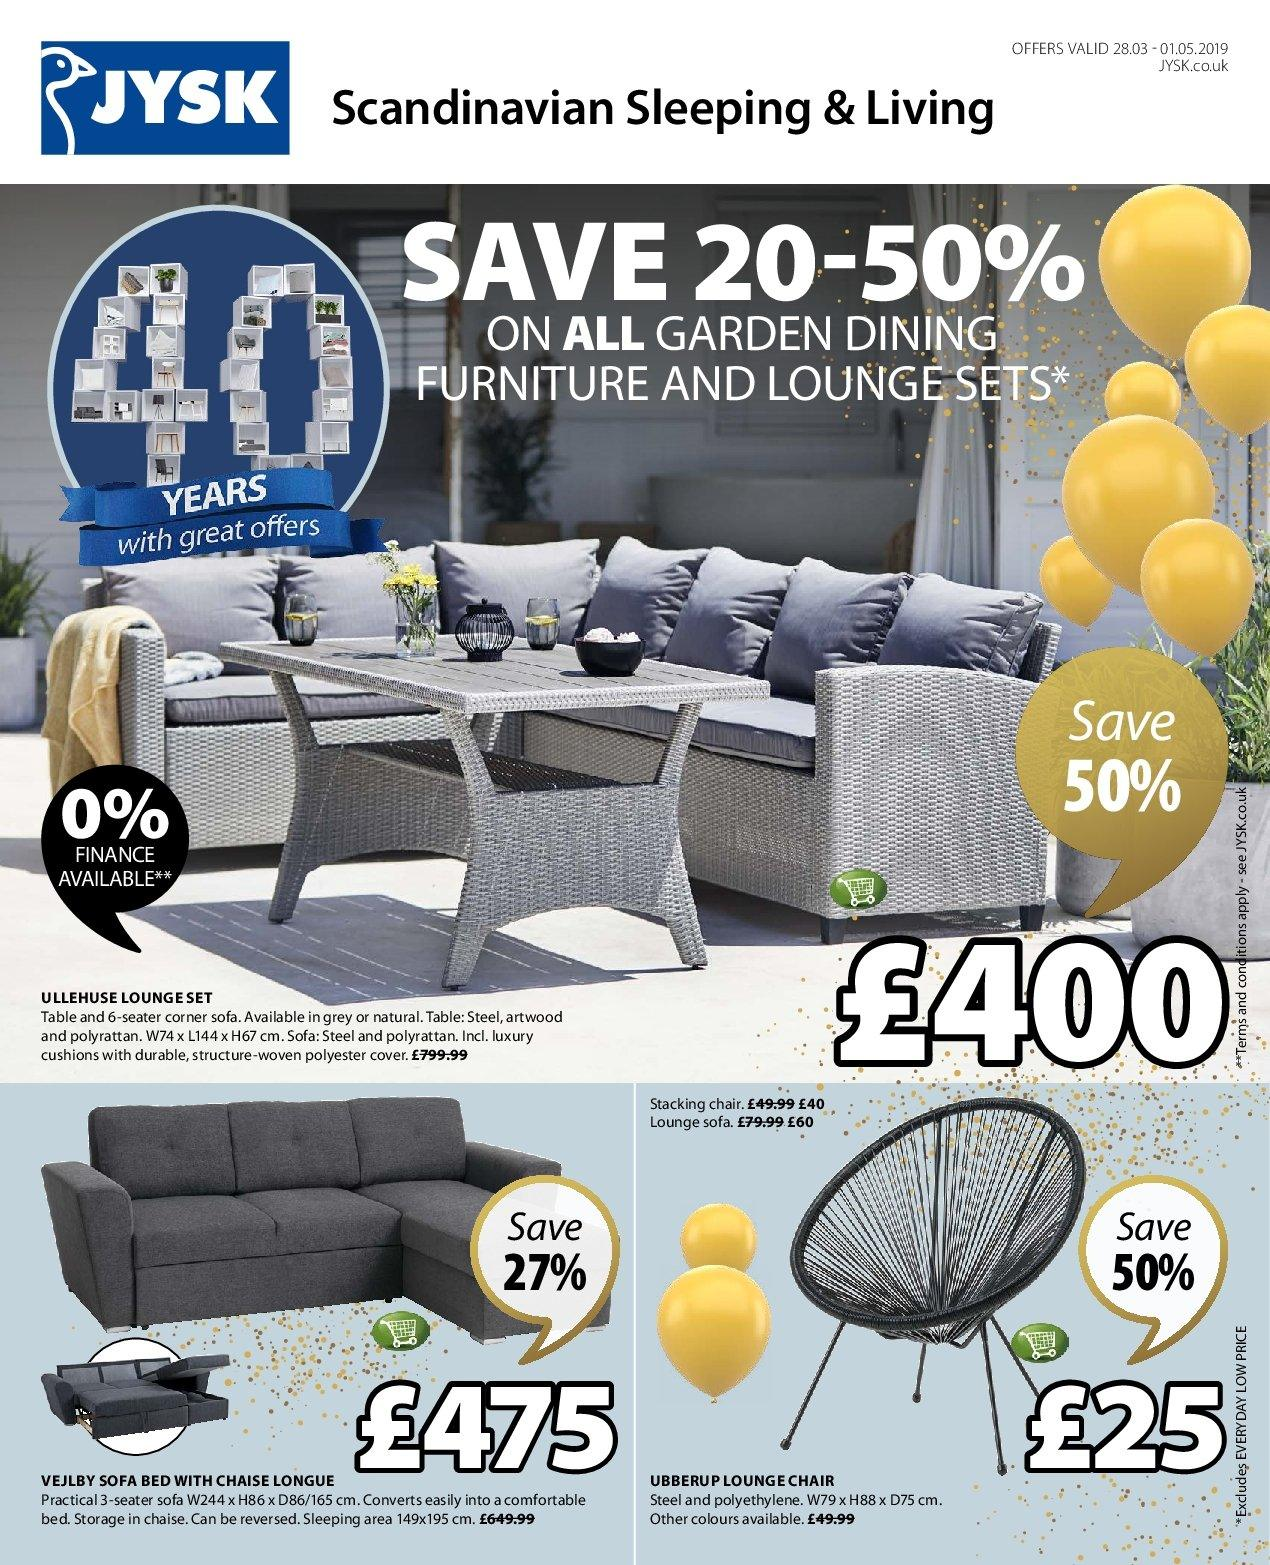 Sofa Uk Finance Current Jysk Leaflet Offer 28 3 2019 1 5 2019 My Leaflet Co Uk